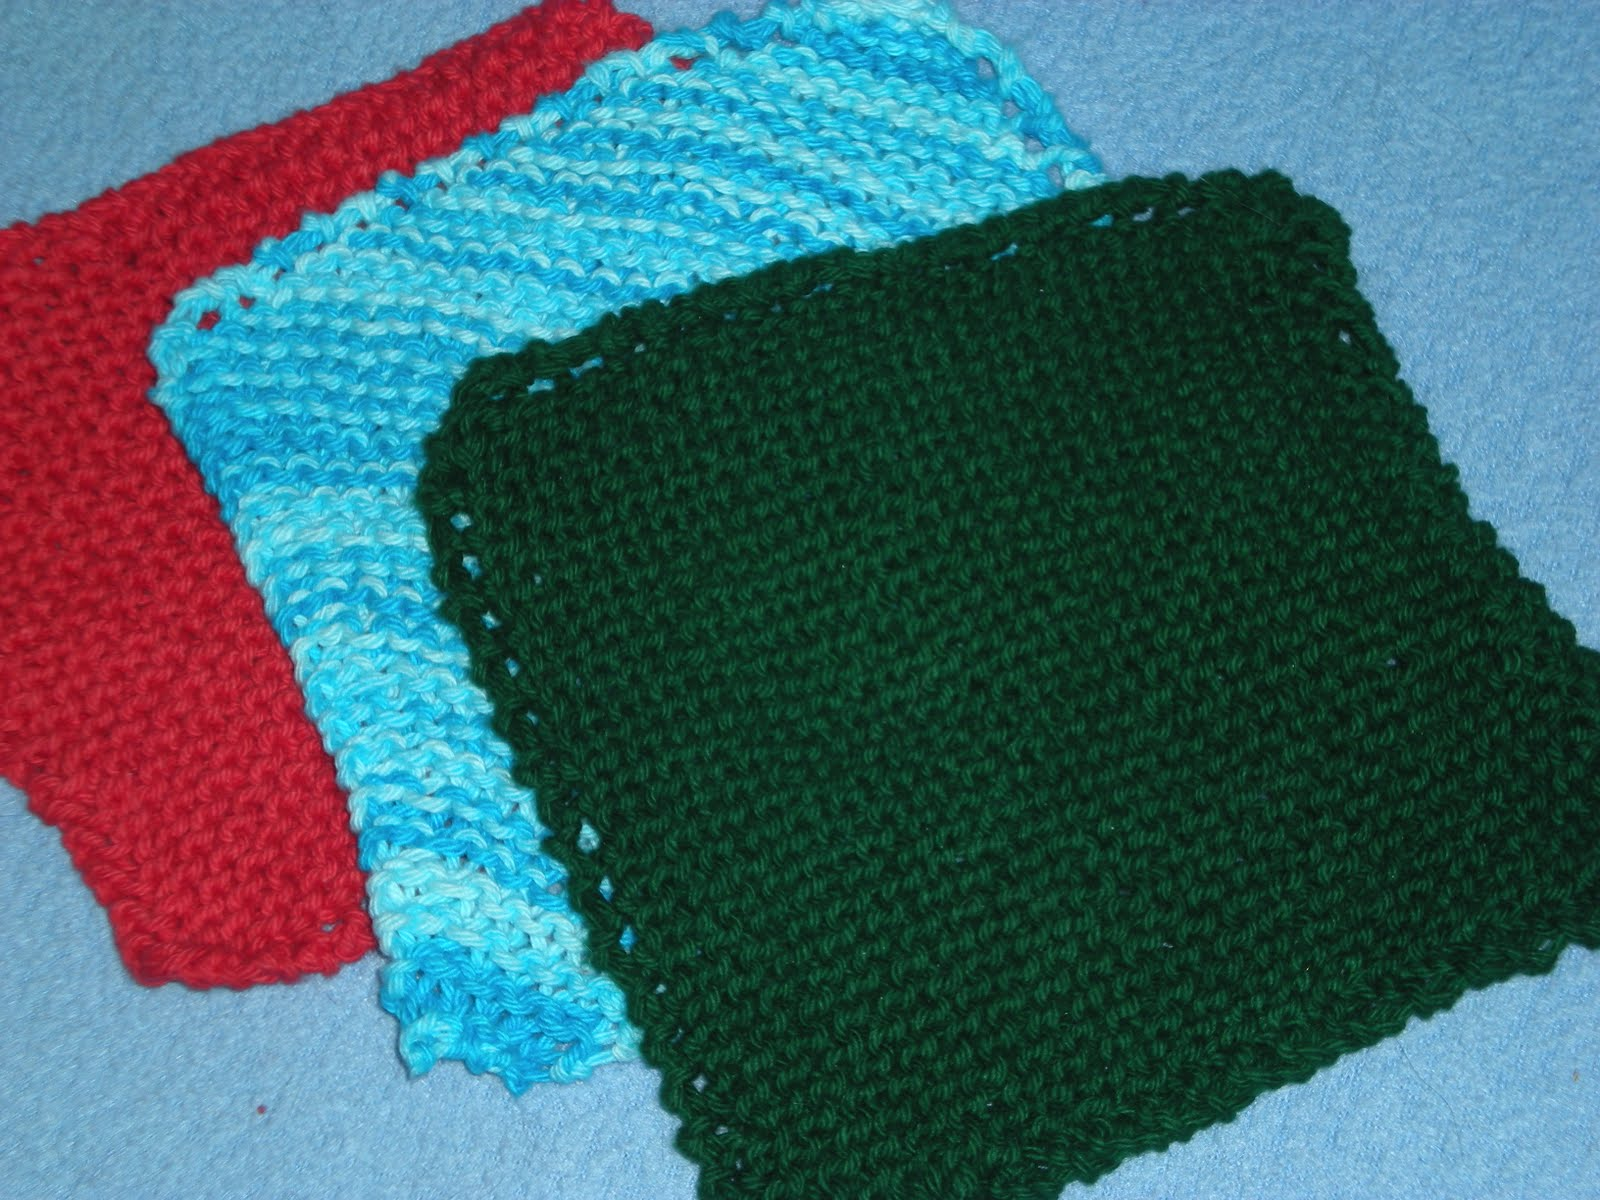 Simple Dishcloth Knitting Pattern : Knitted Dishcloths Patterns Patterns Gallery